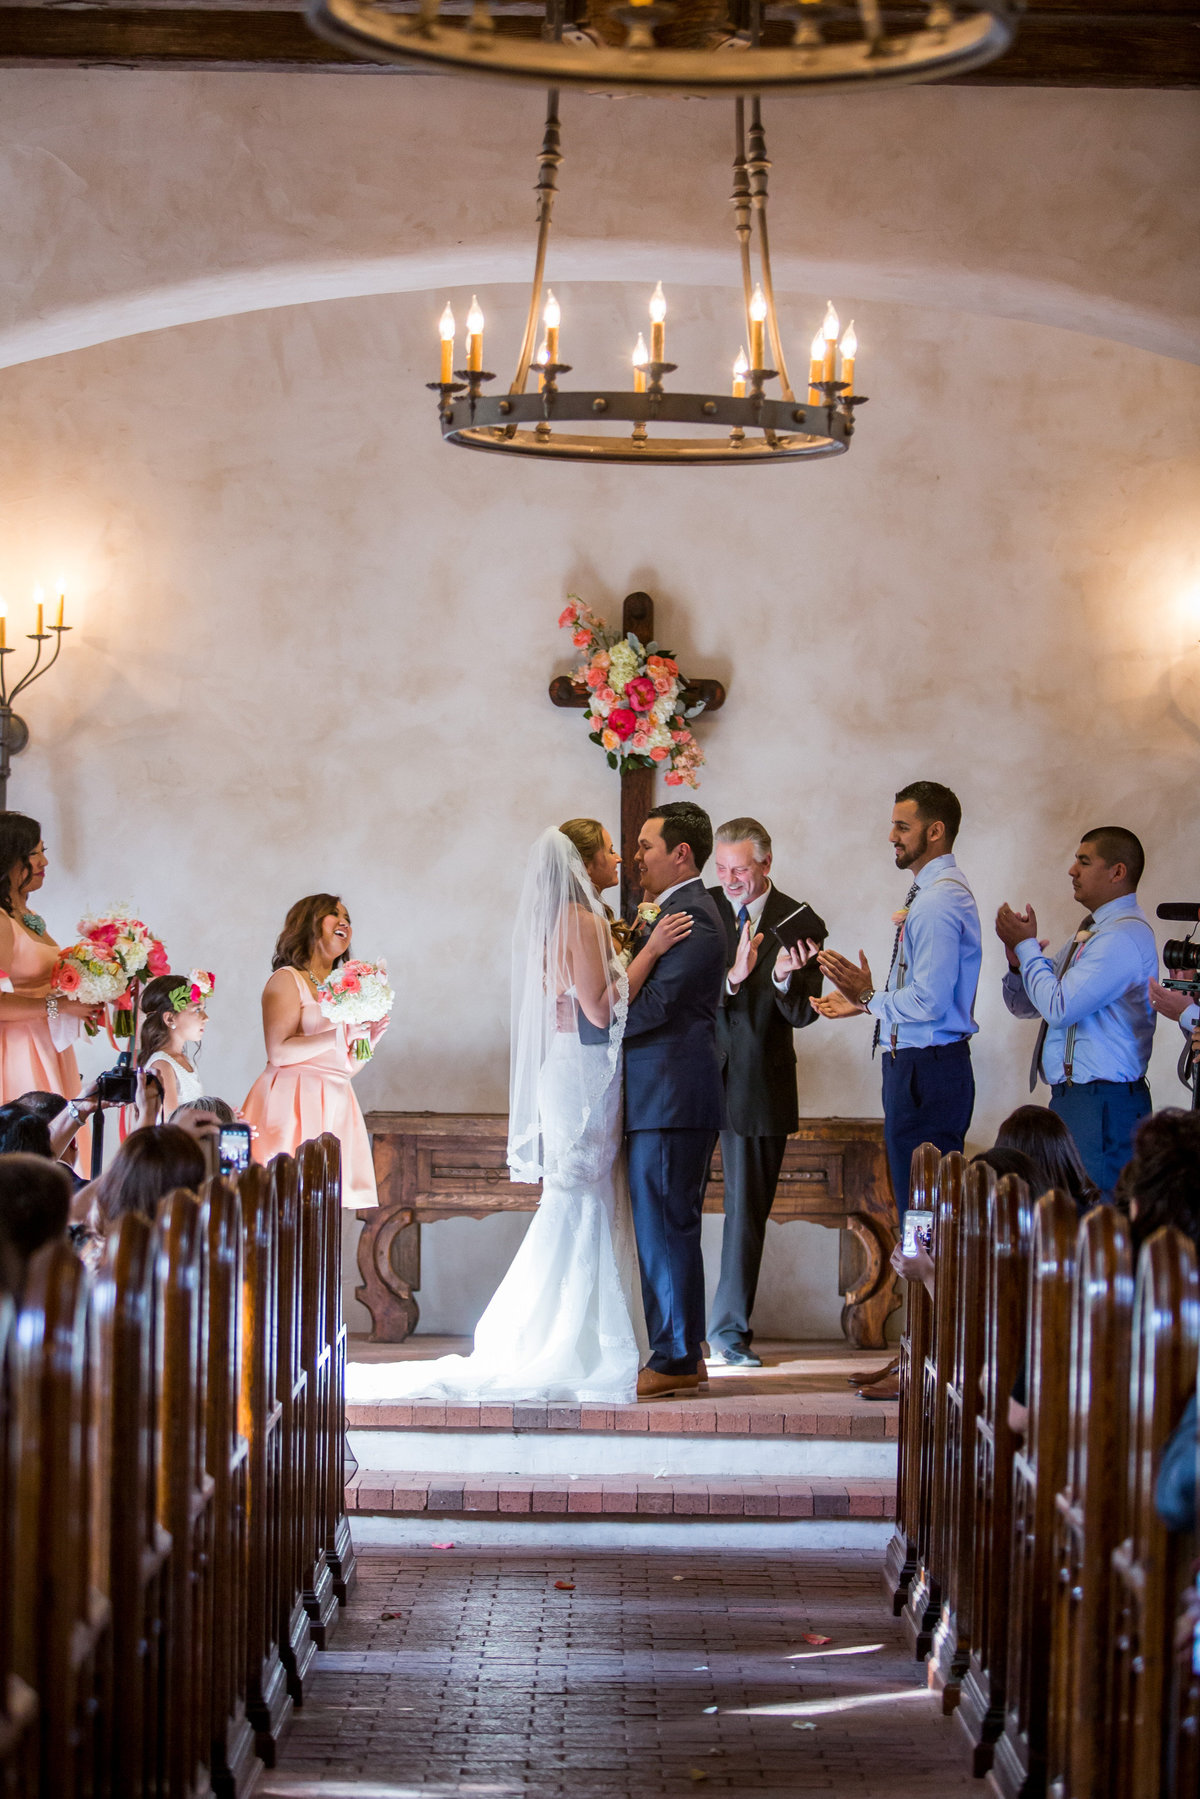 Bride and groom hold each other during wedding ceremony at Lost Mission venue in Hill Country